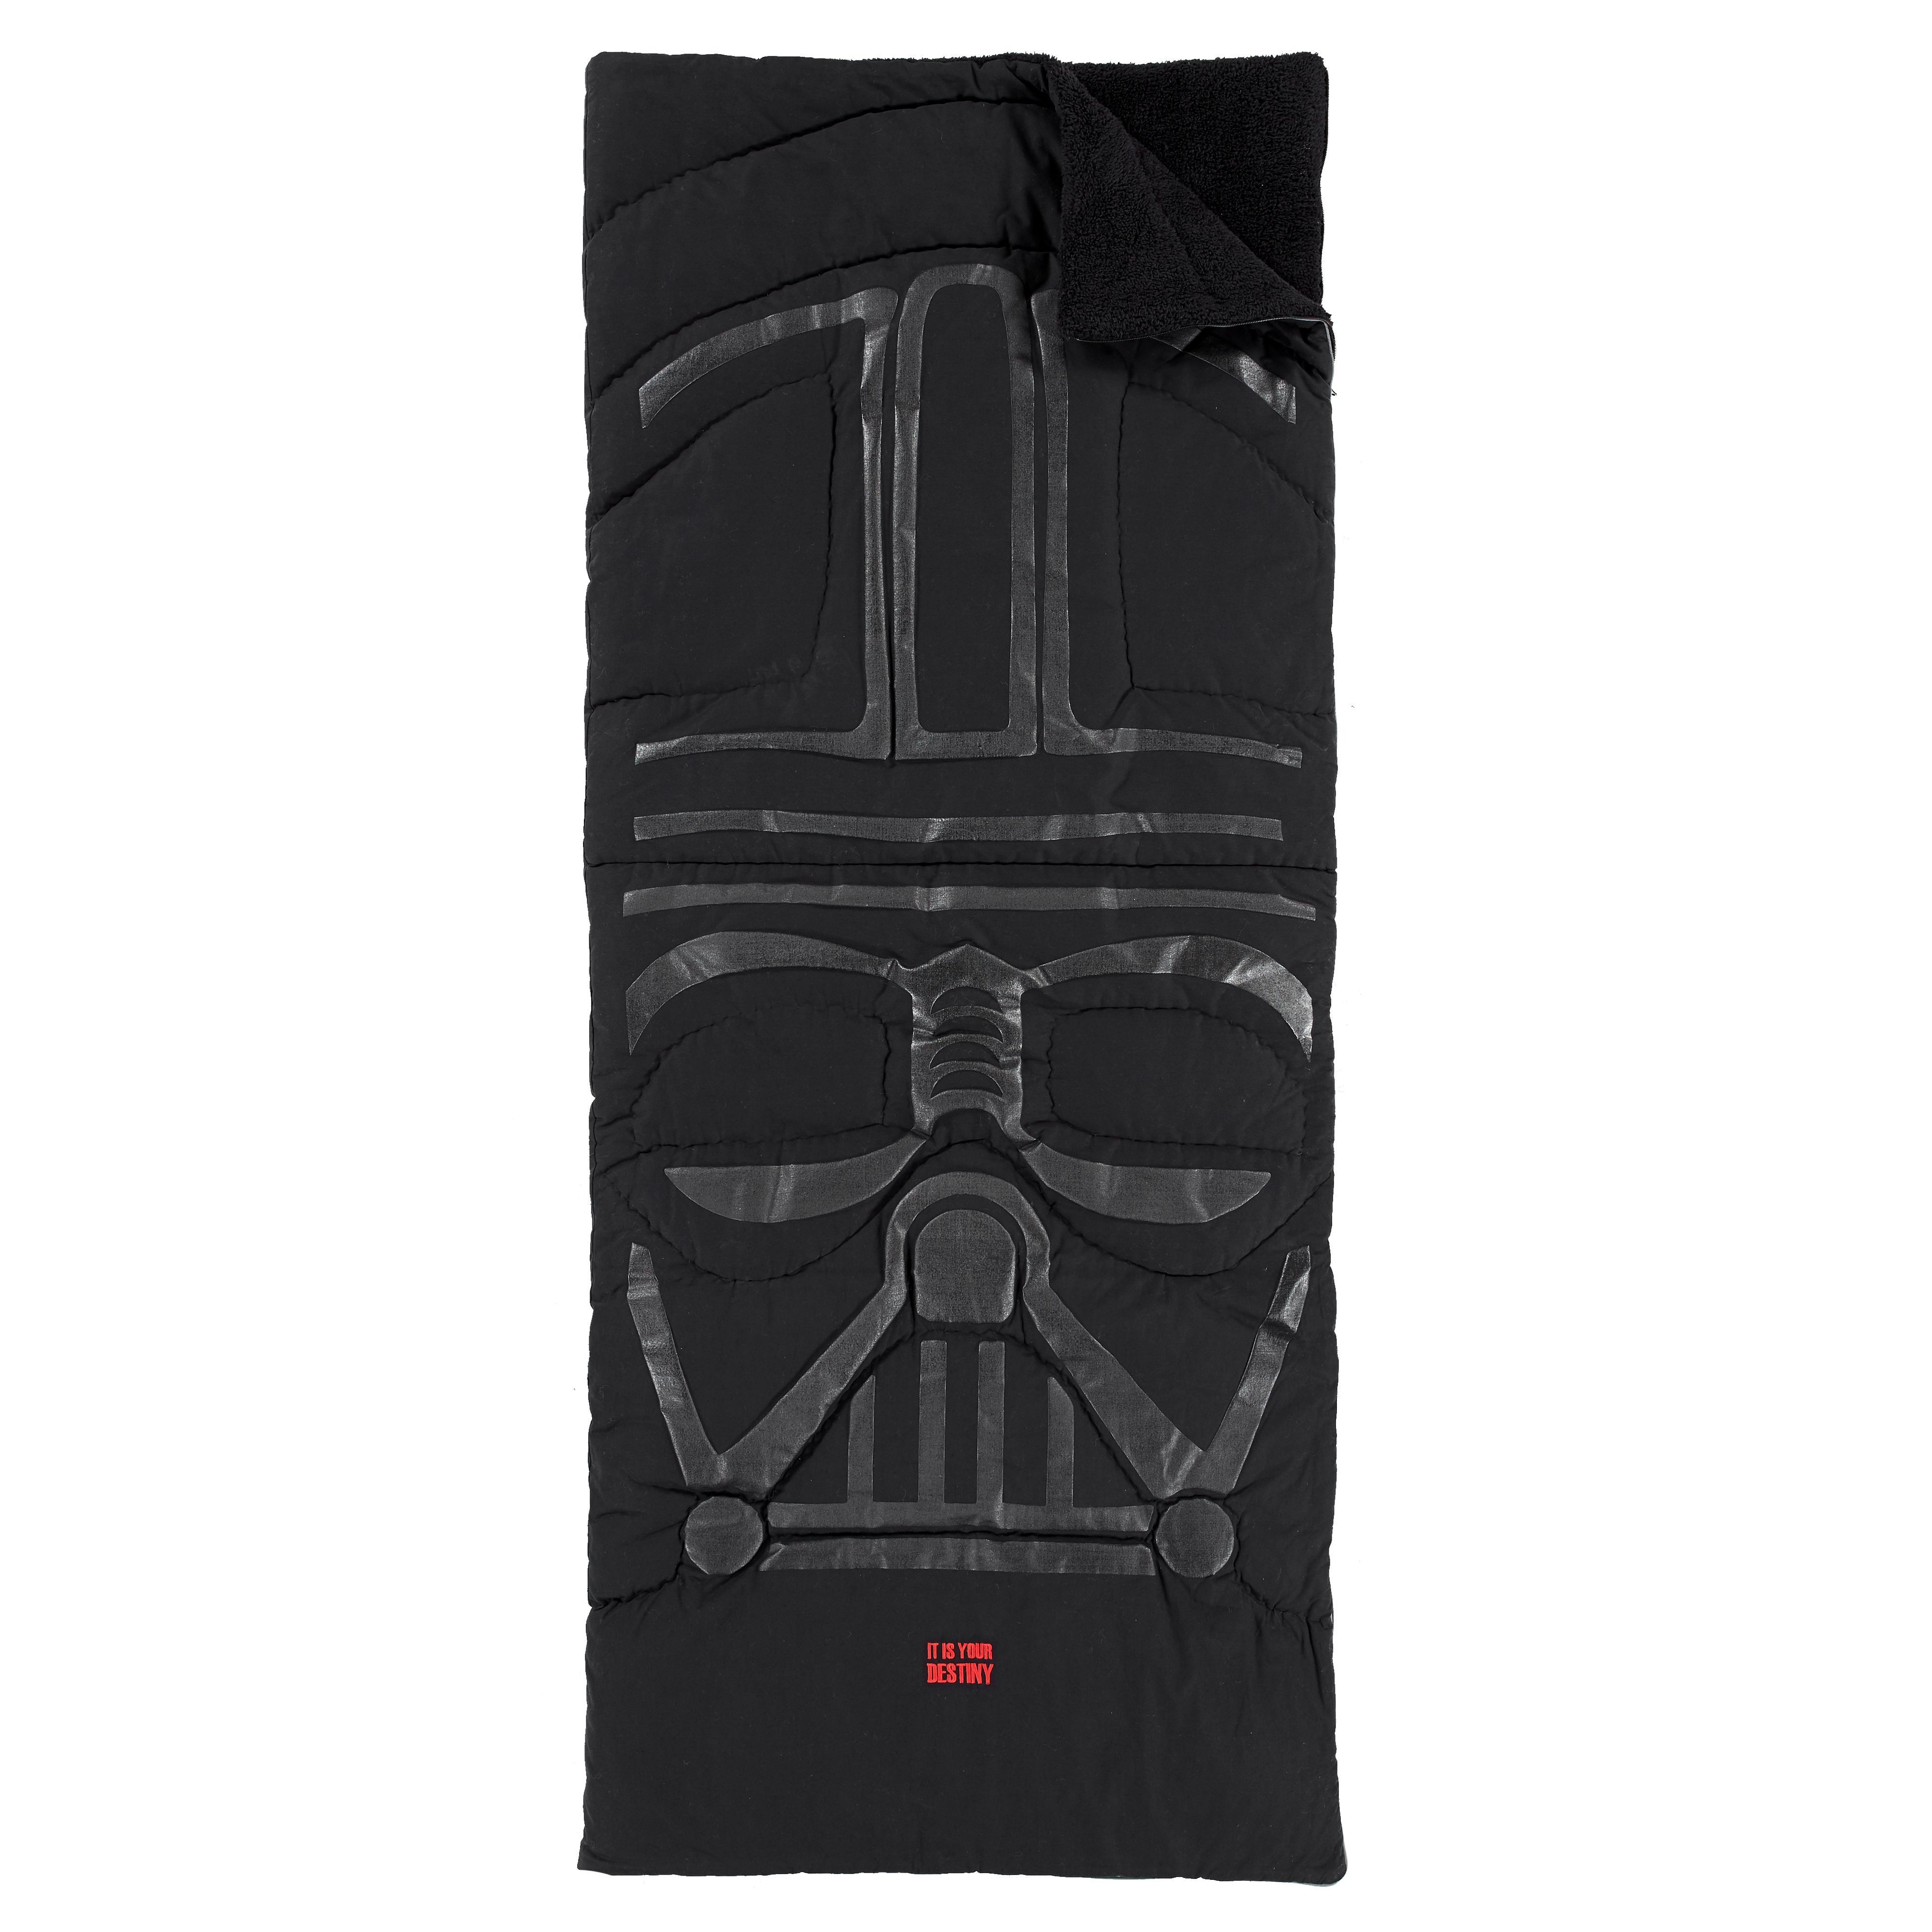 Star Wars Darth Vader Sleeping Bag Showcase Which Side Of The Force You Belong To With Our Featuring Supreme Leader